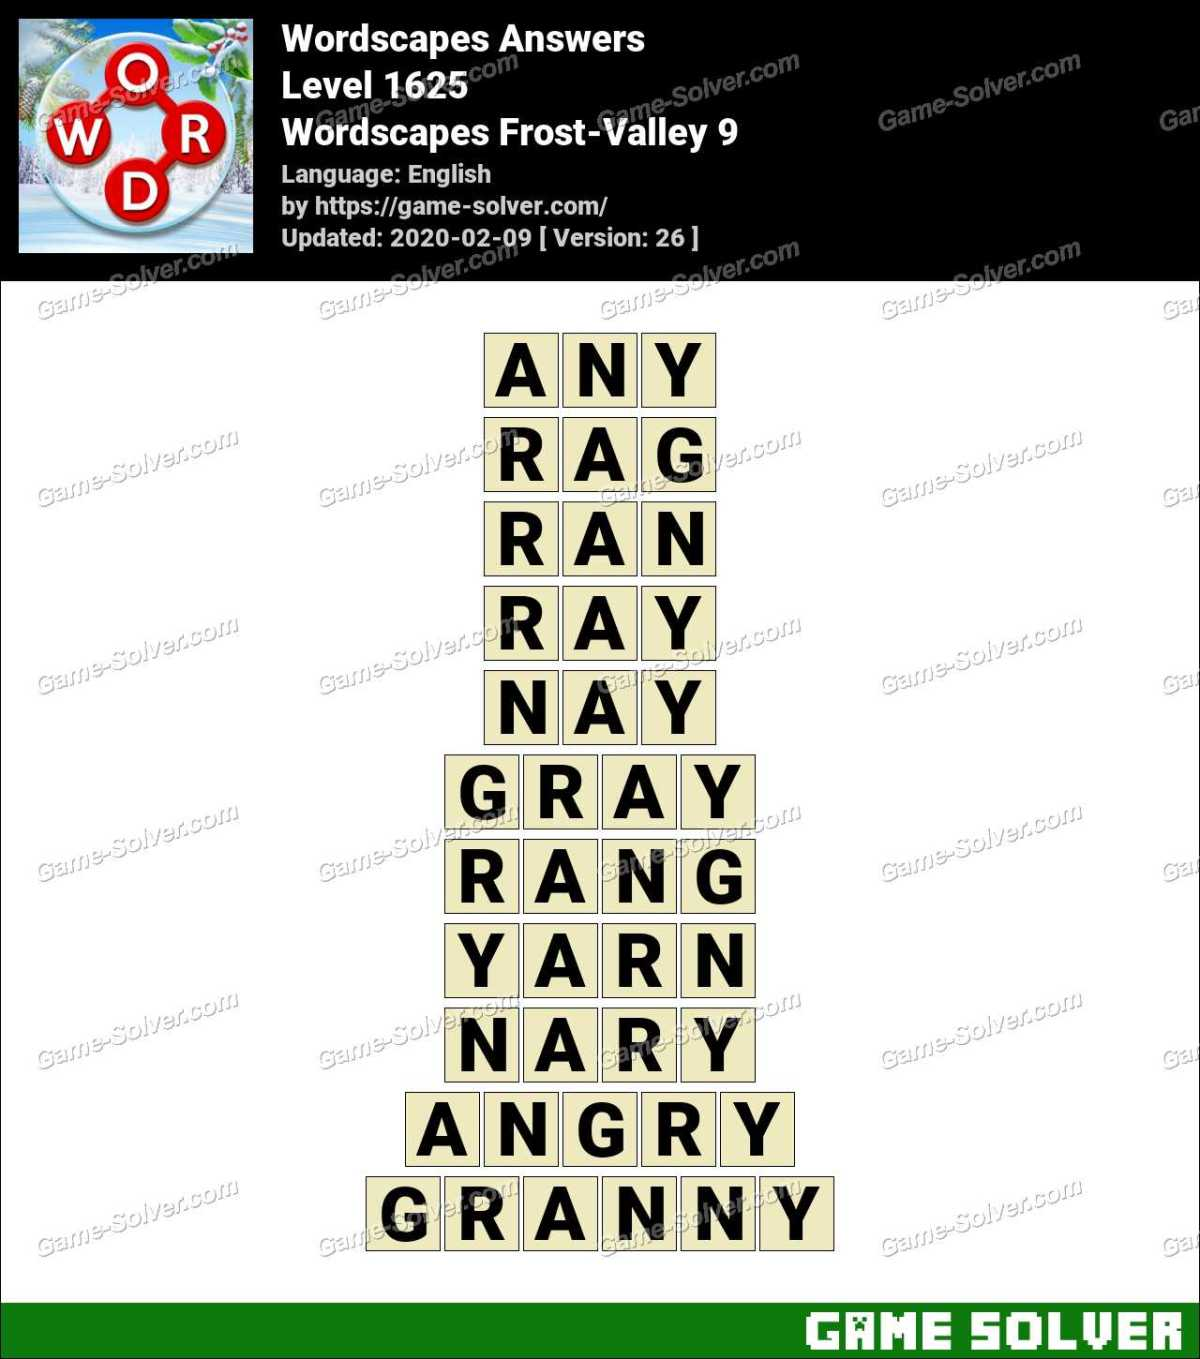 Wordscapes Frost-Valley 9 Answers